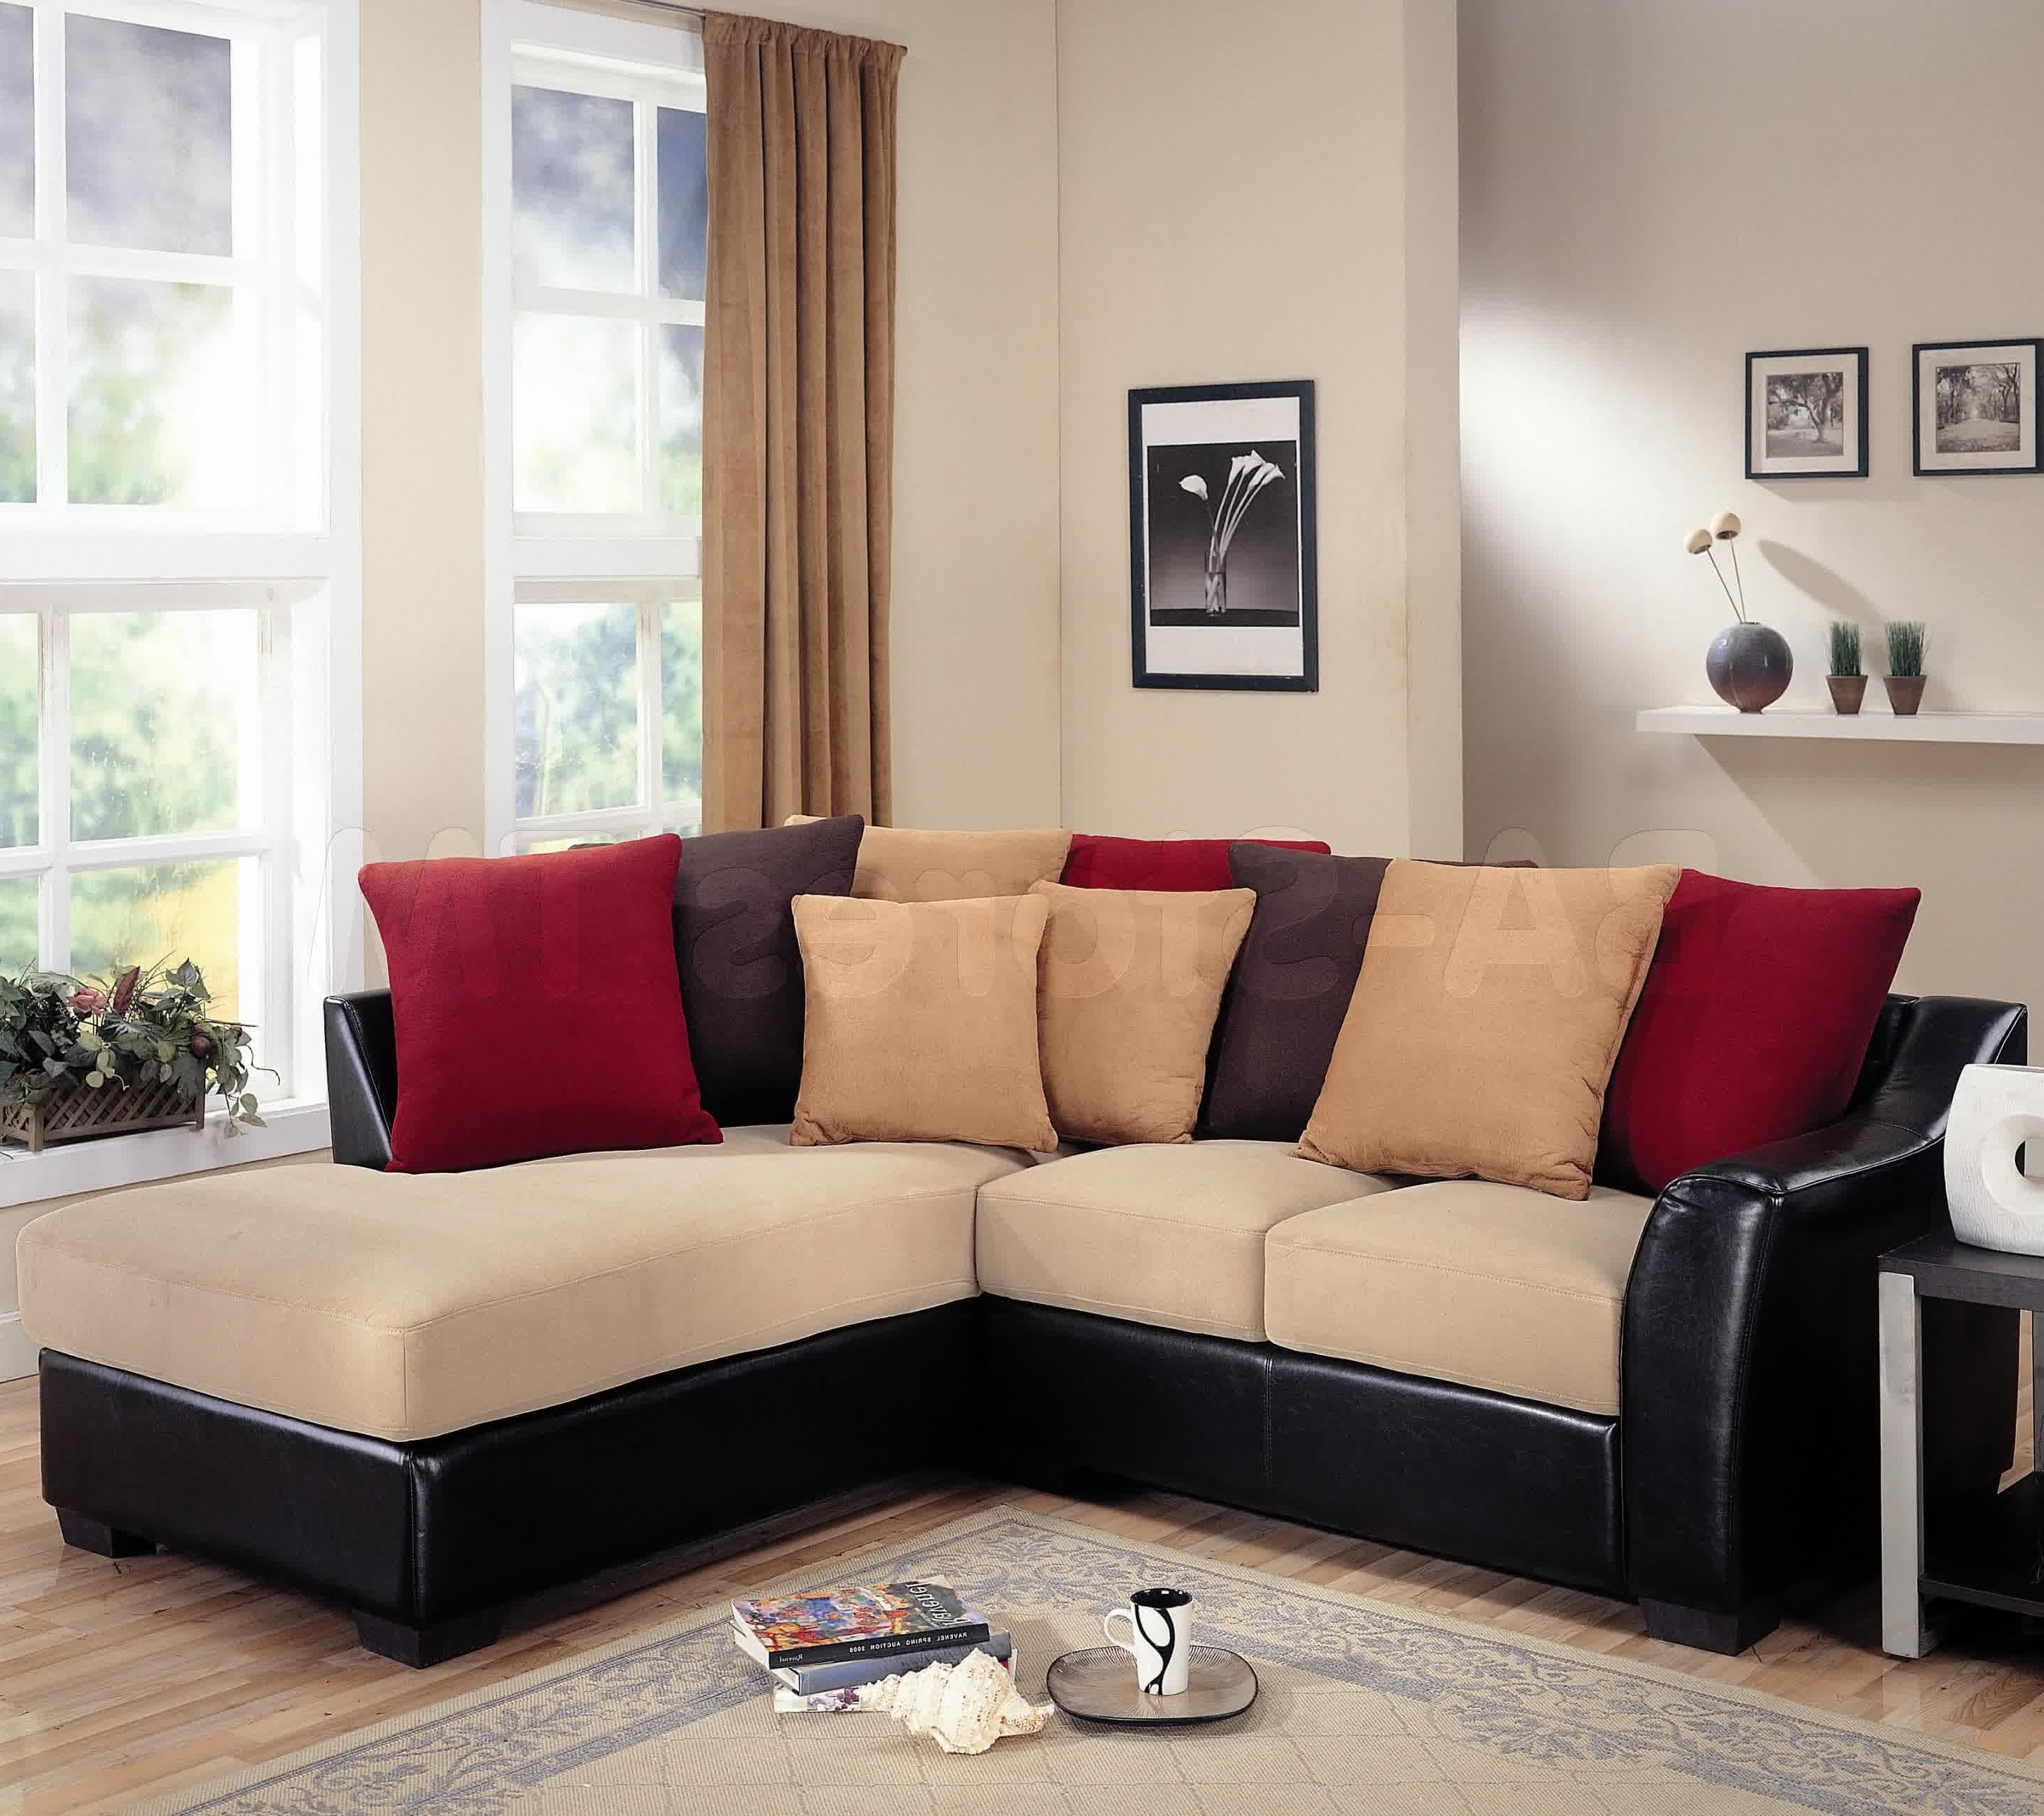 Sectional Sofas Under 300 Intended For Well Liked Home Designs : Bobs Living Room Sets Cheap Sectional Sofas Under (View 11 of 15)